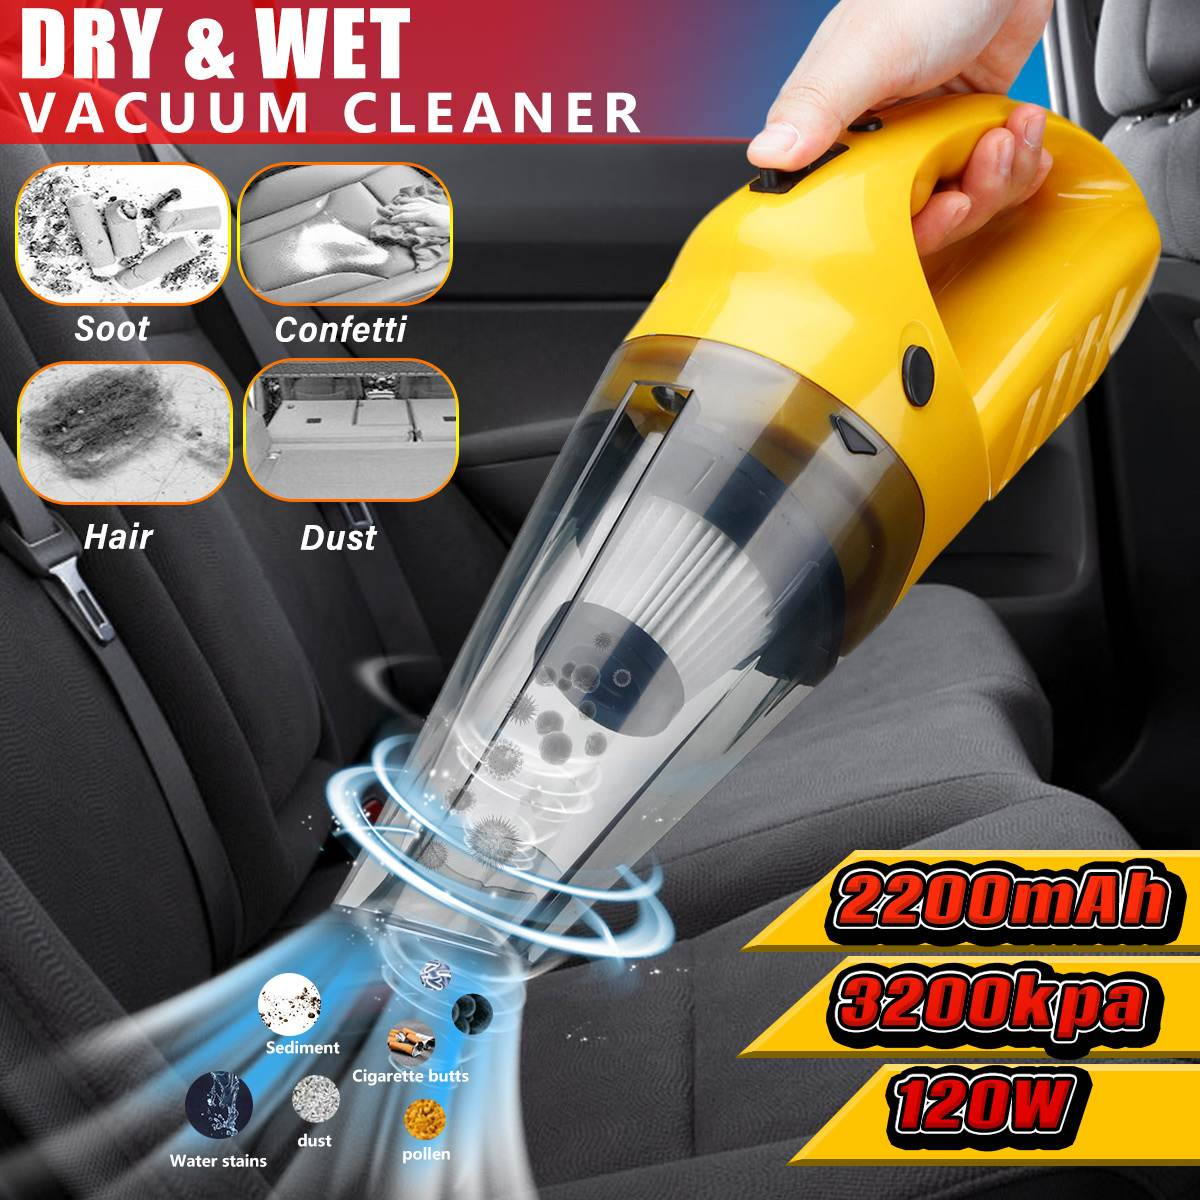 1200W High Power Car Vacuum Cleaner 5000pa Rechargeable Cordless Handheld Home